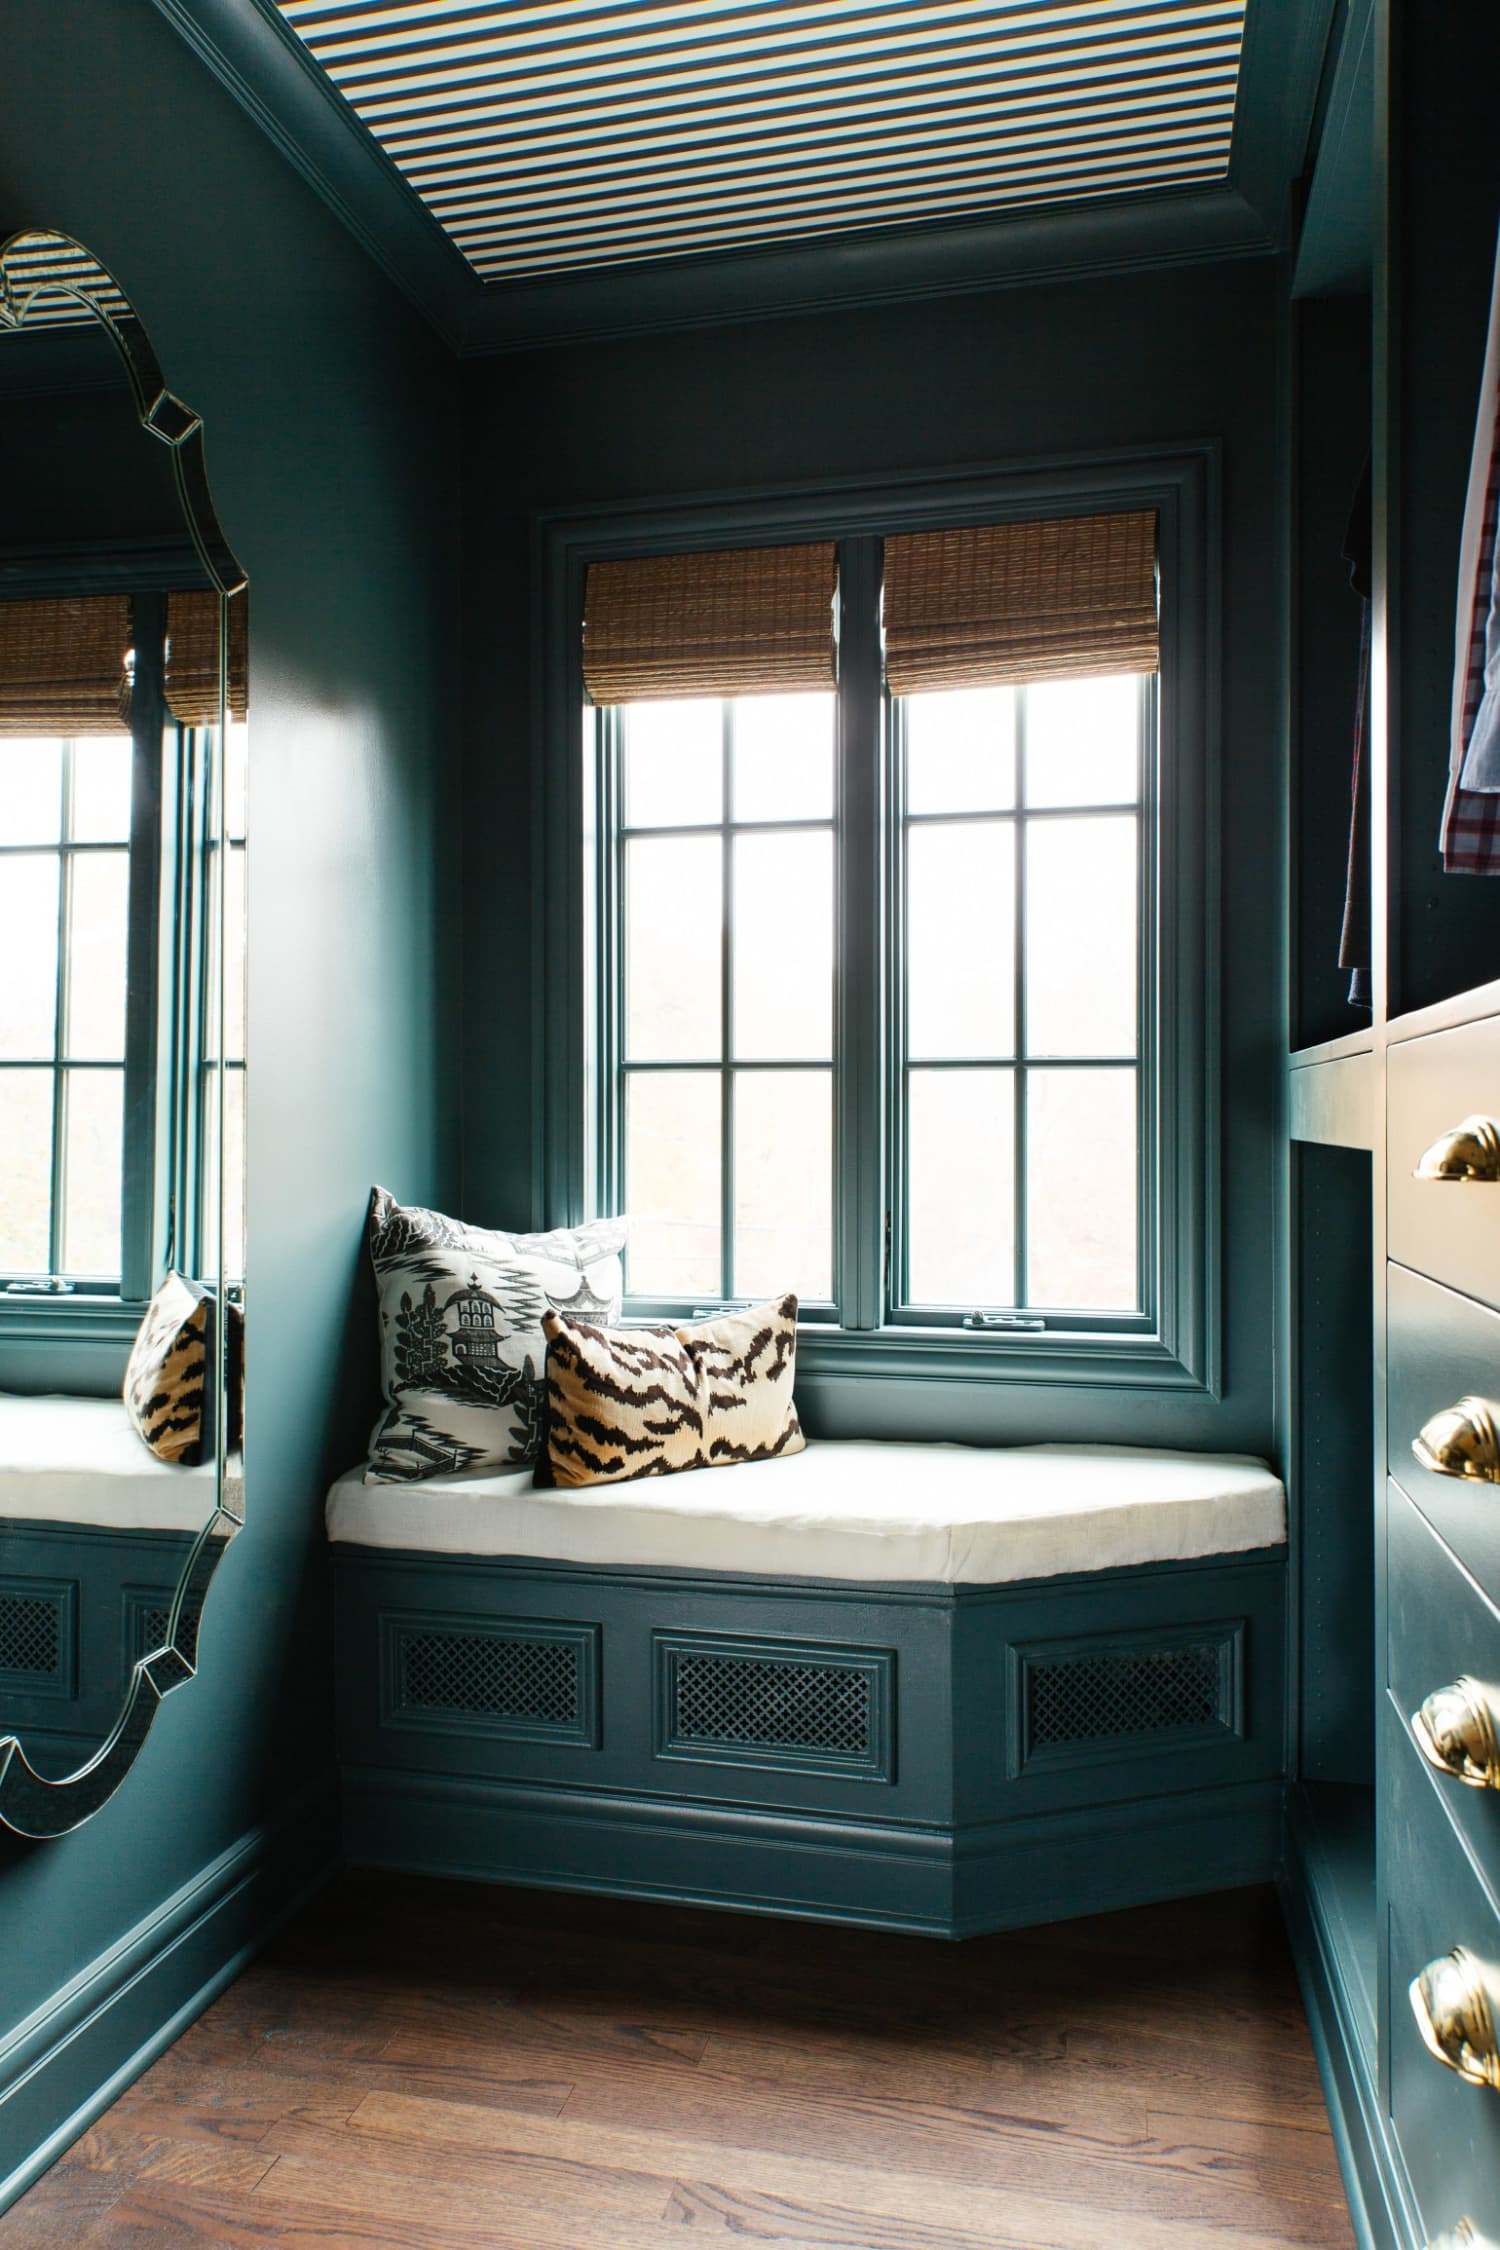 Apartmenttherapy Com On Flipboard 15 Stylish Radiator Cover Ideas To Hide Your Home S Old Ugly Radiators